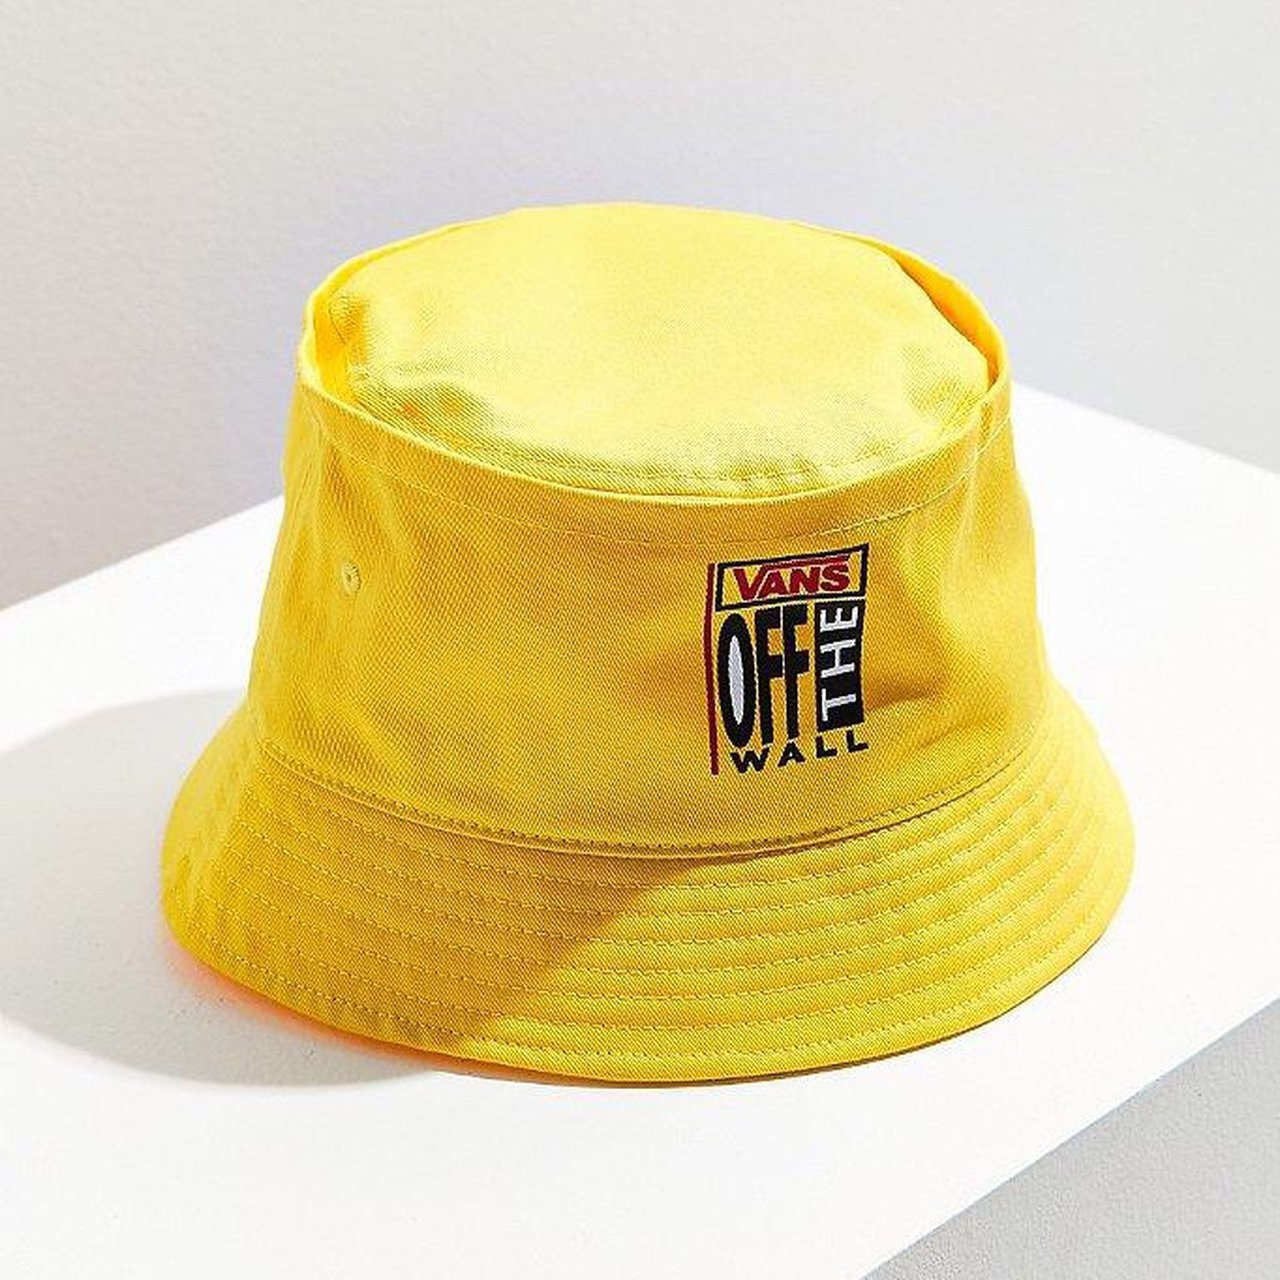 Vans x Urban Outfitters yellow bucket hat! (Discontinued!) - Depop fda9e067fc1